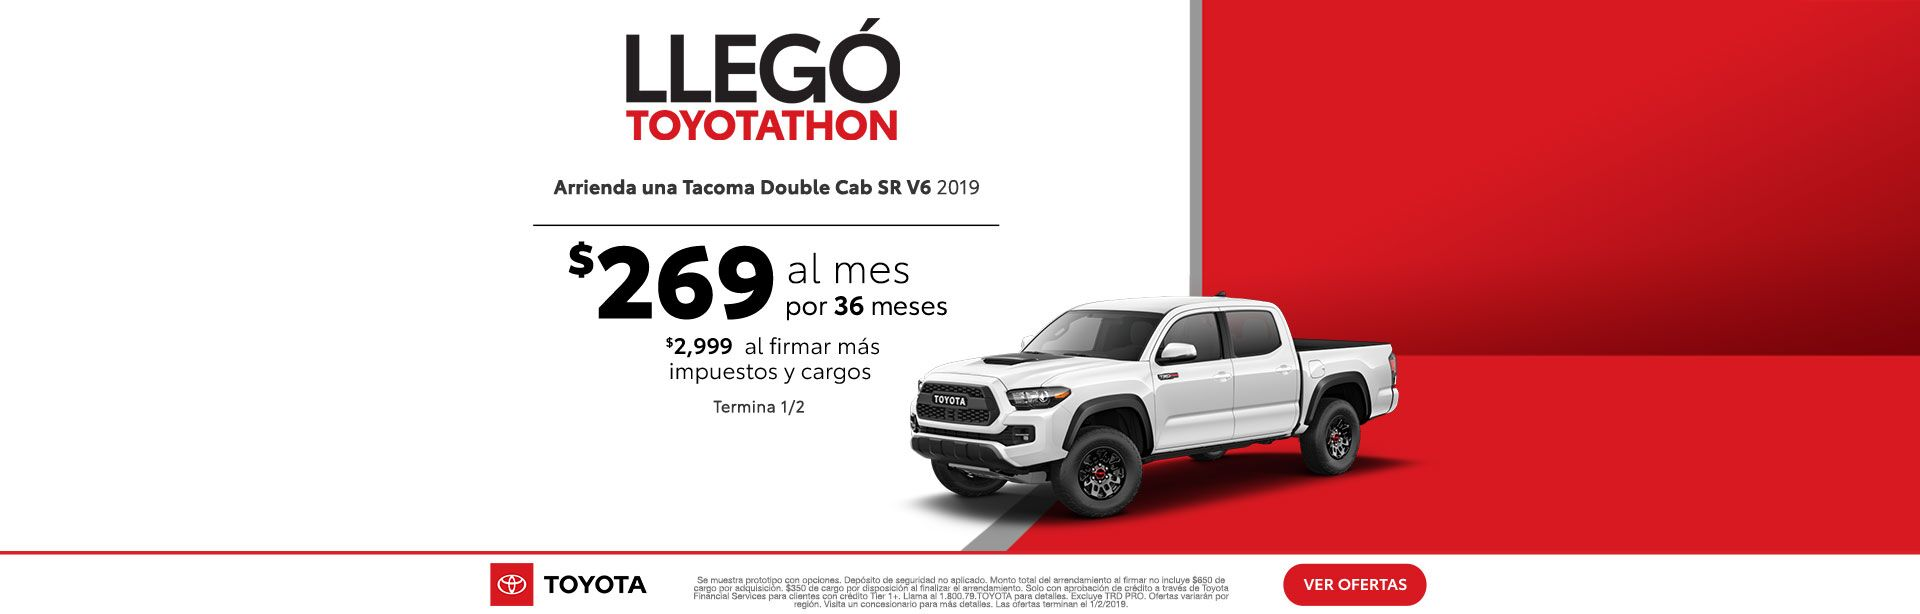 Toyotathon is on Tacoma ESP Dec 2018